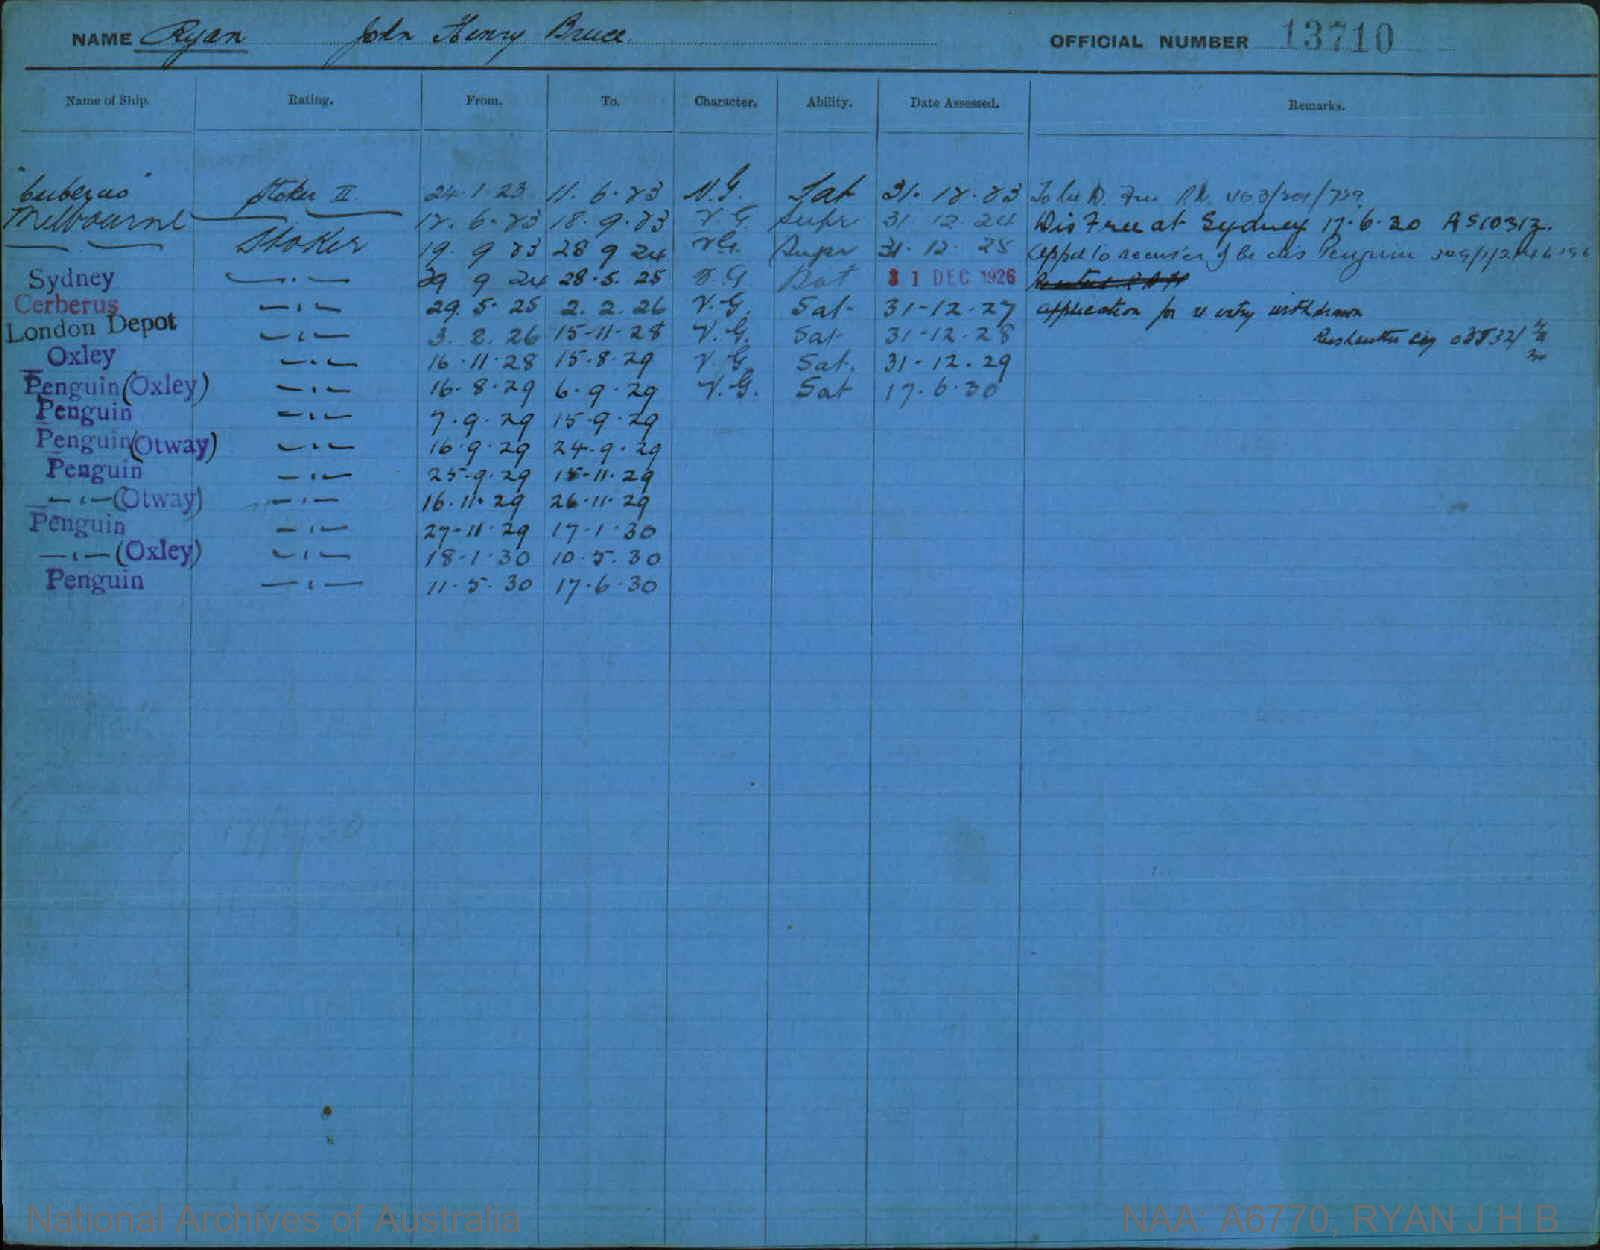 RYAN JOHN HENRY BRUCE : Service Number - 13710 : Date of birth - 10 Apr 1904 : Place of birth - SYDNEY NSW : Place of enlistment - SYDNEY : Next of Kin - SARAH